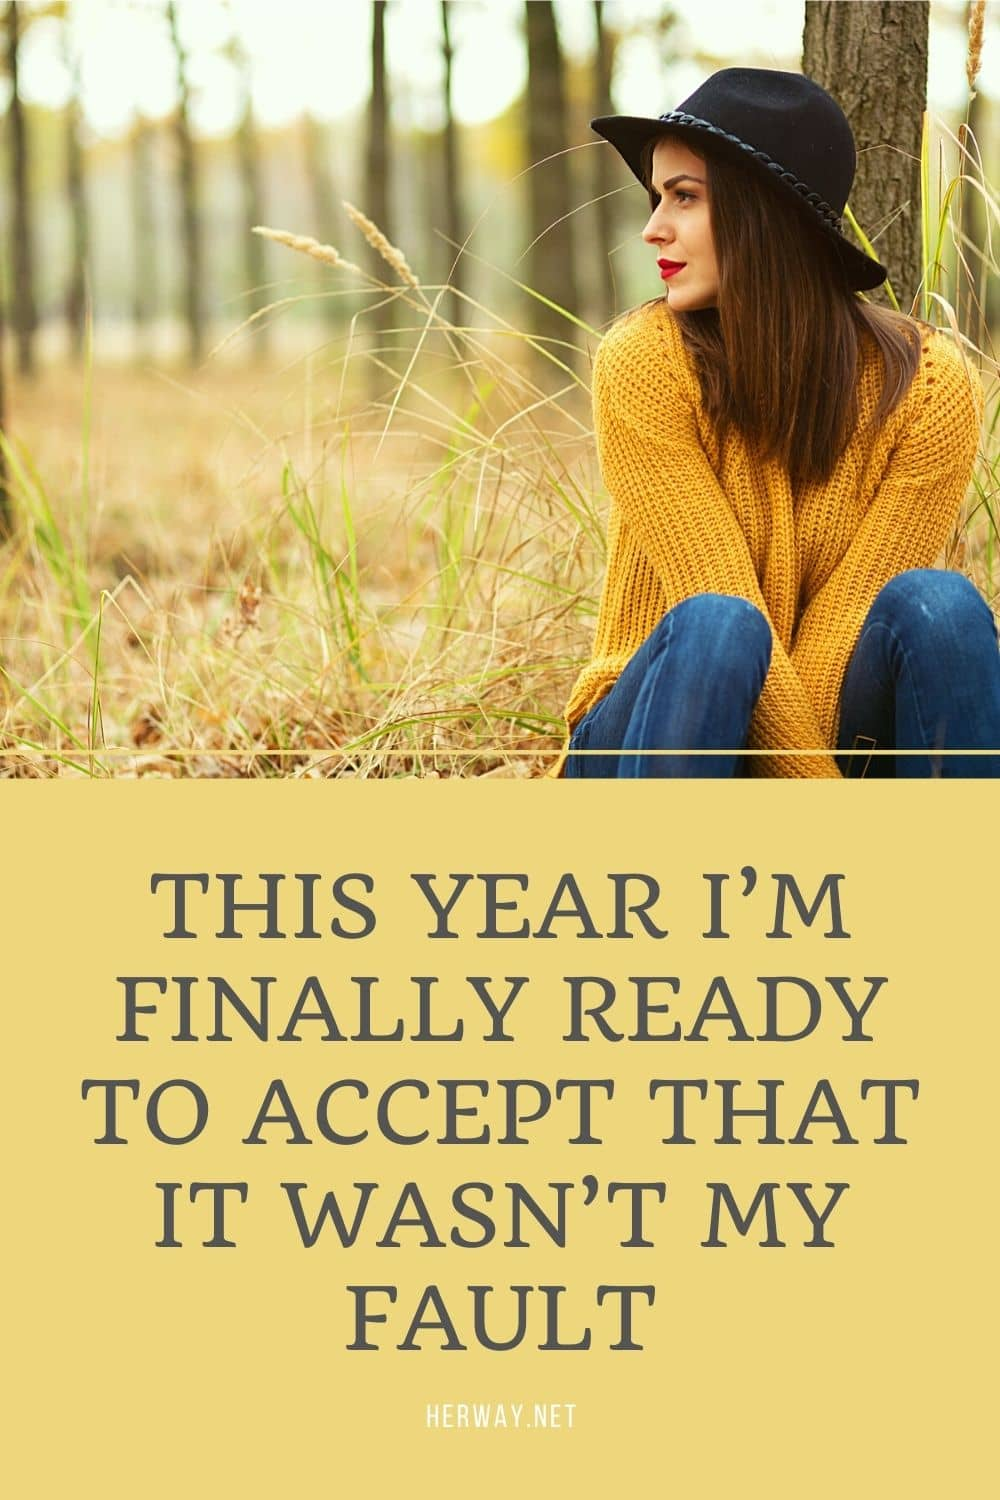 This Year I'm Finally Ready To Accept That It Wasn't My Fault